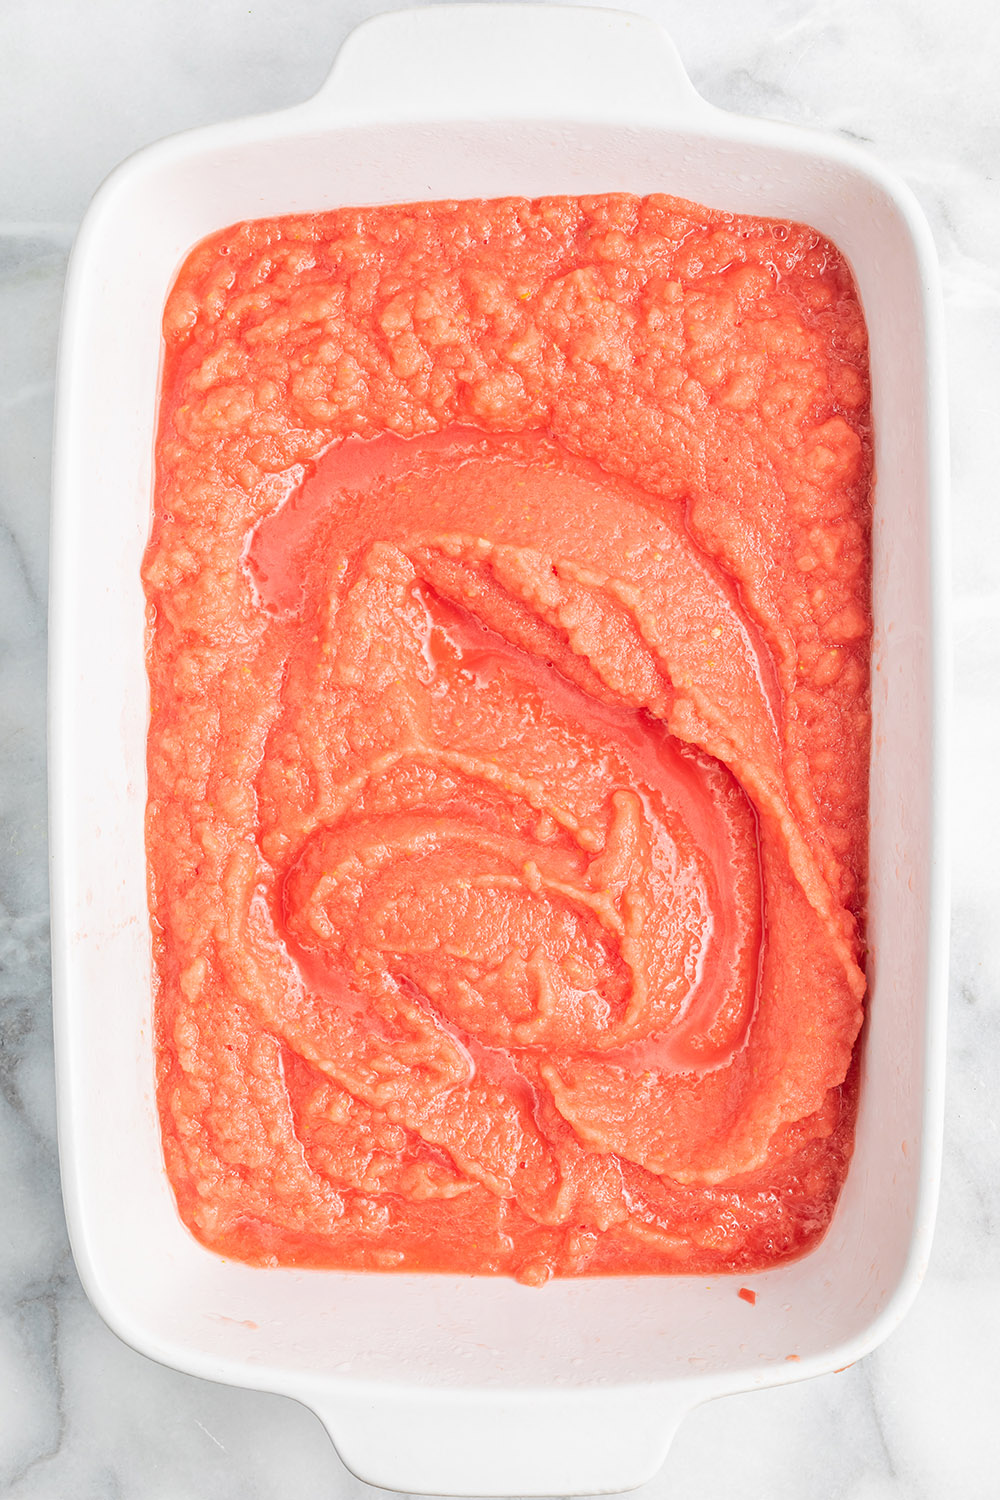 Blended watermelon in a white dish.